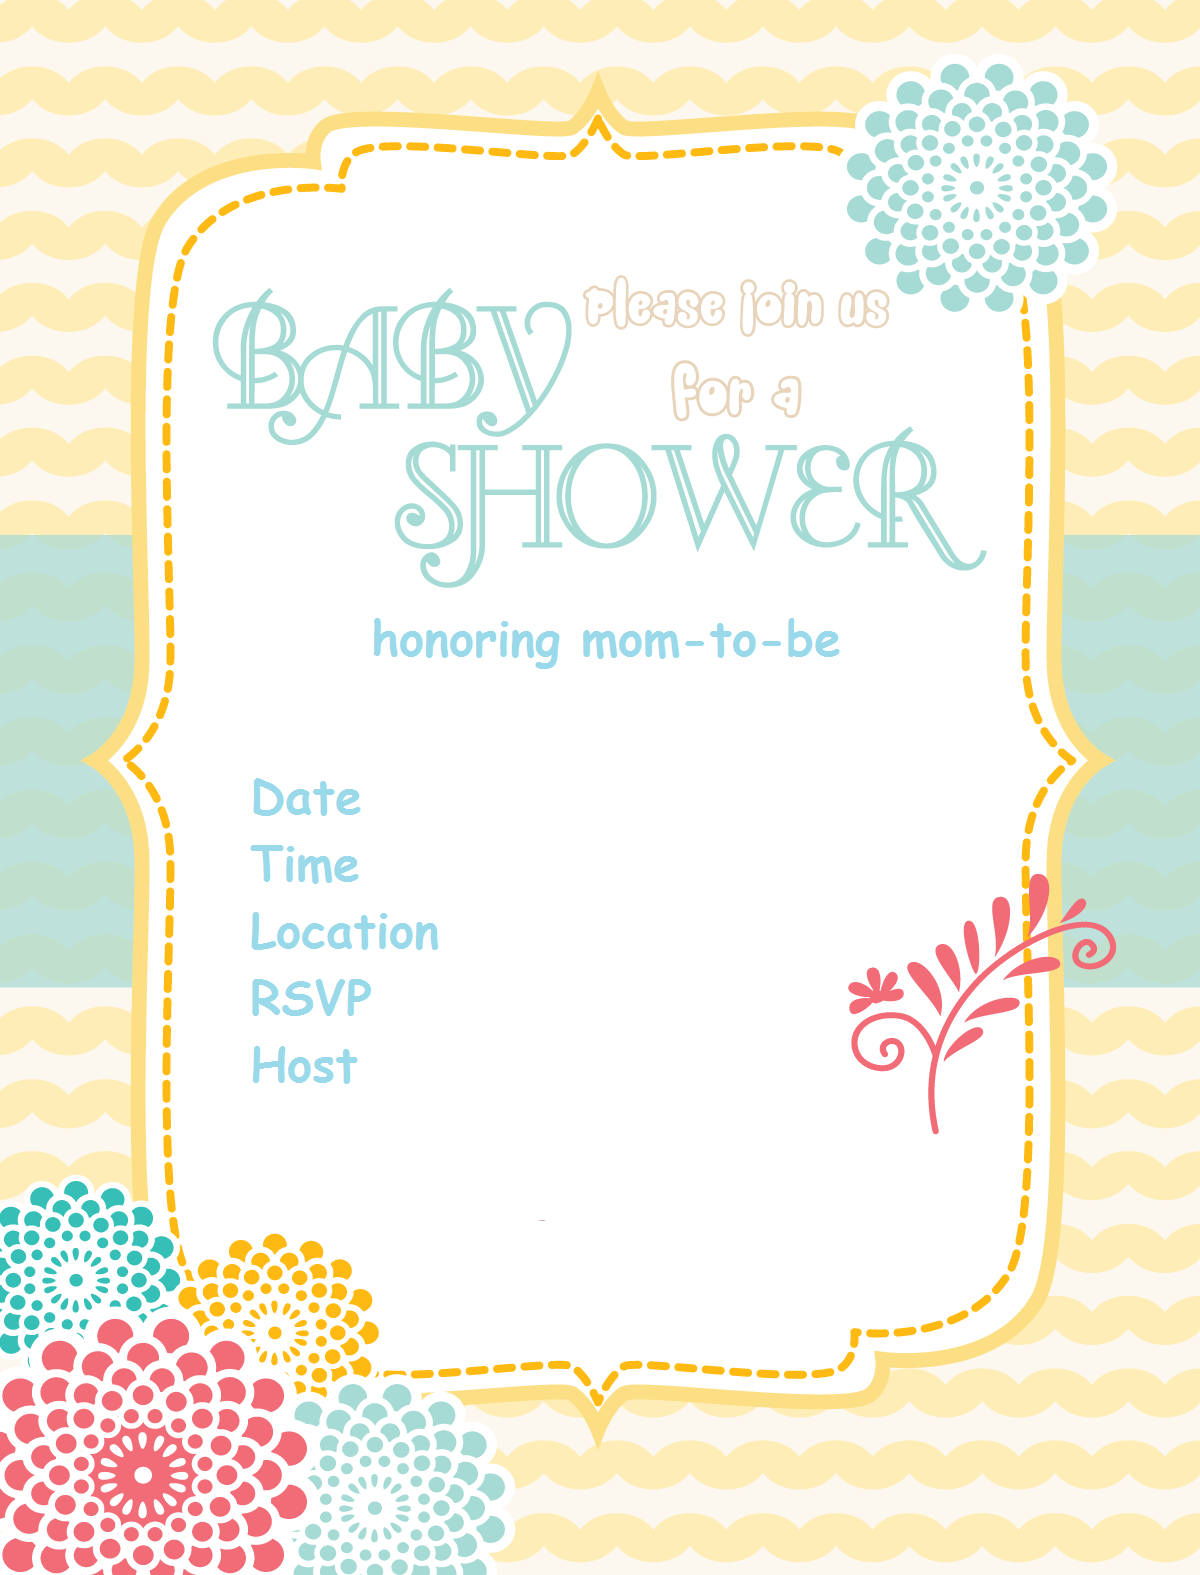 free online baby shower invitations templates - free printable baby shower invitations baby shower ideas